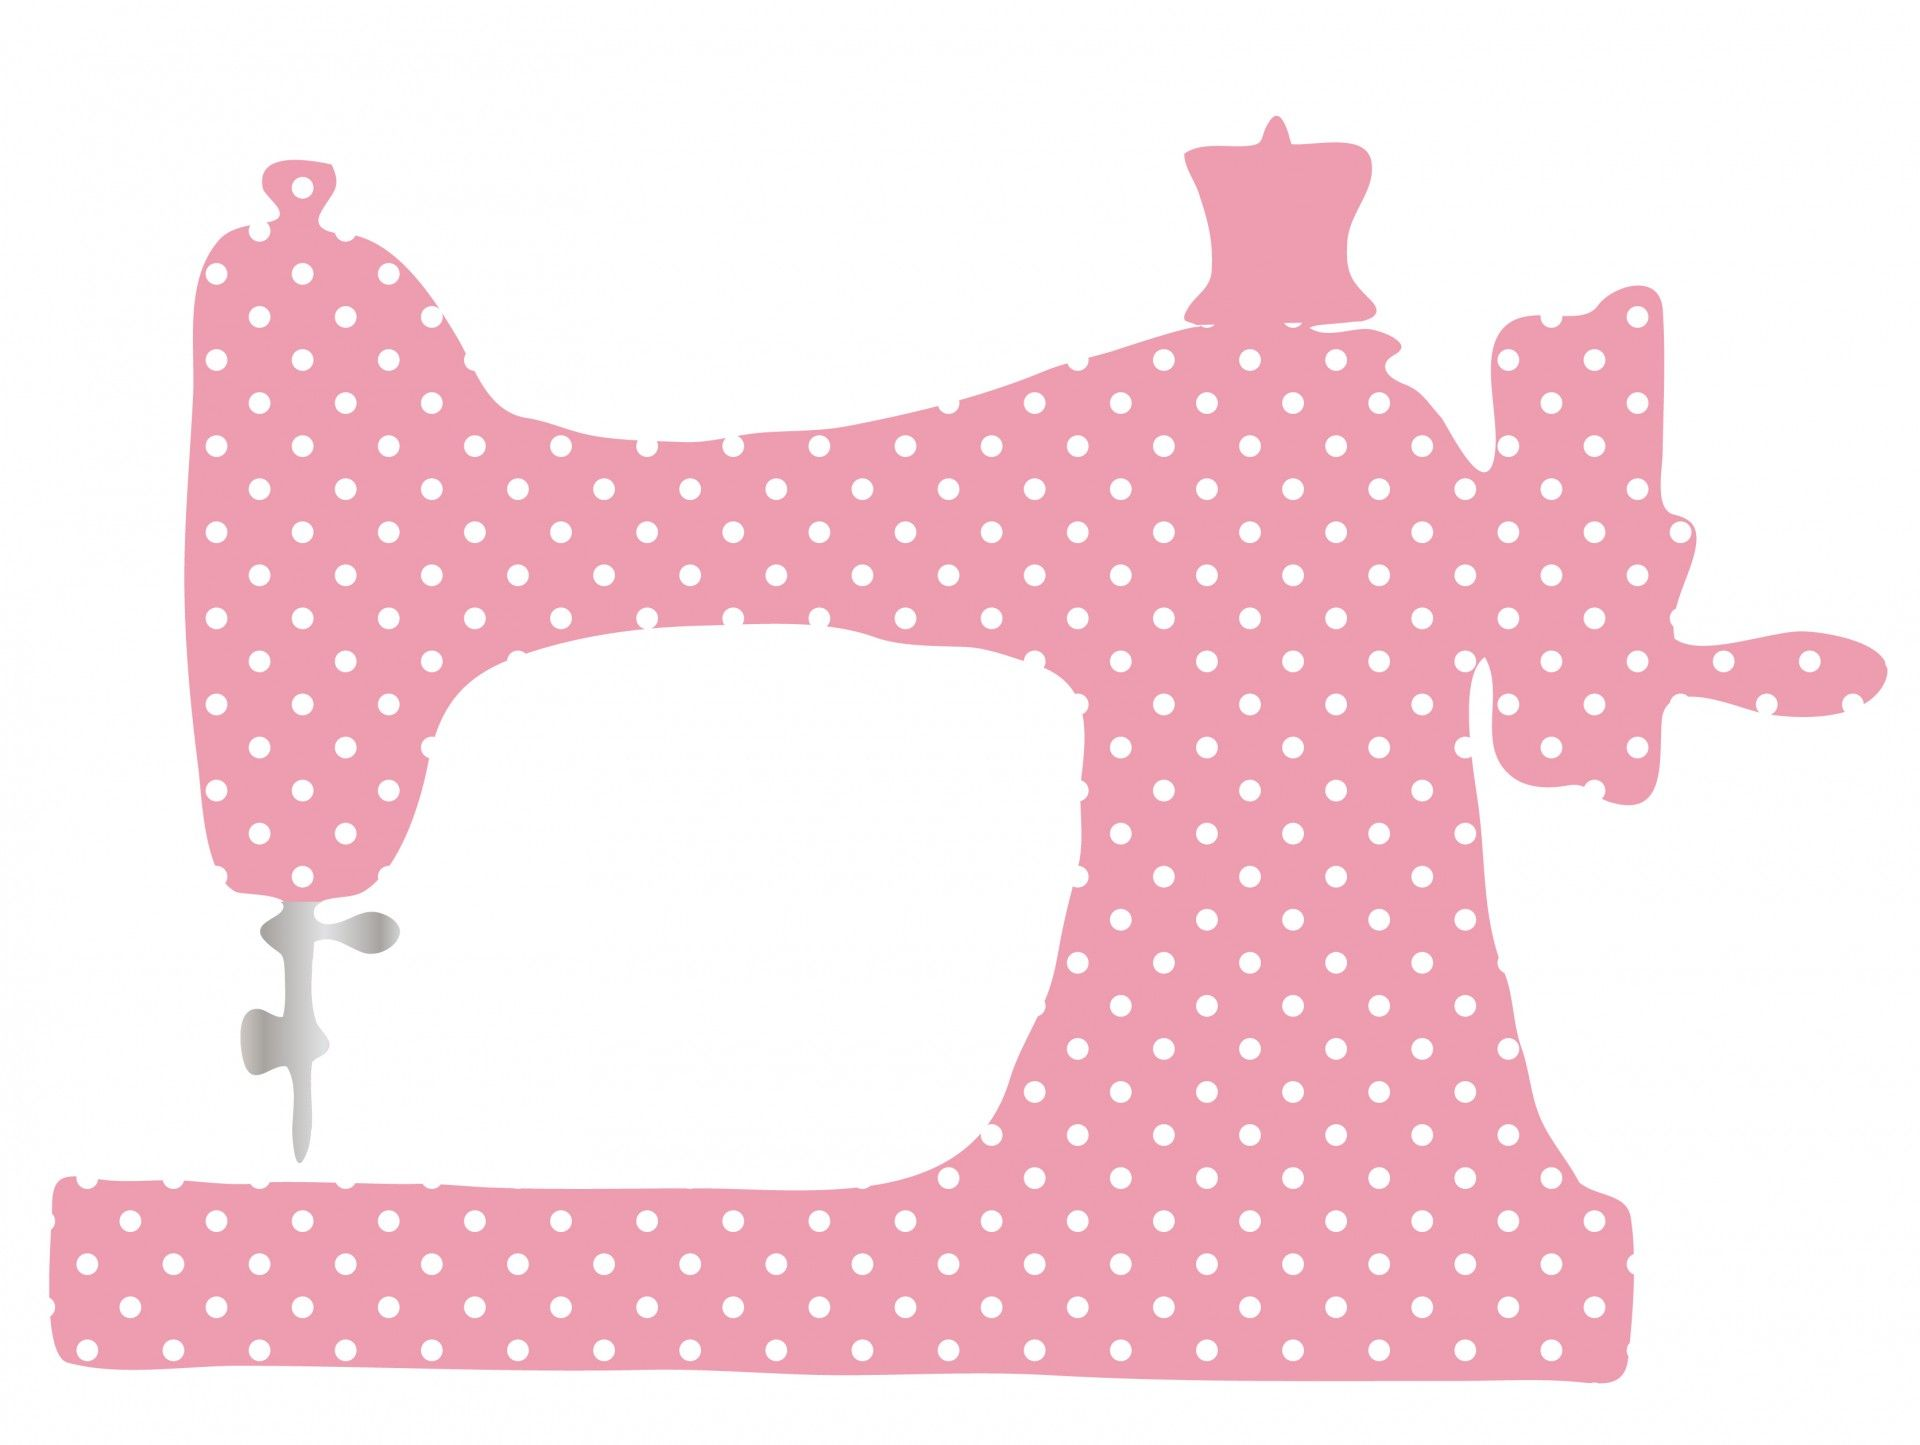 Craft room clipart banner royalty free stock Sewing machine clipart for the craft room | Printables | Sewing ... banner royalty free stock